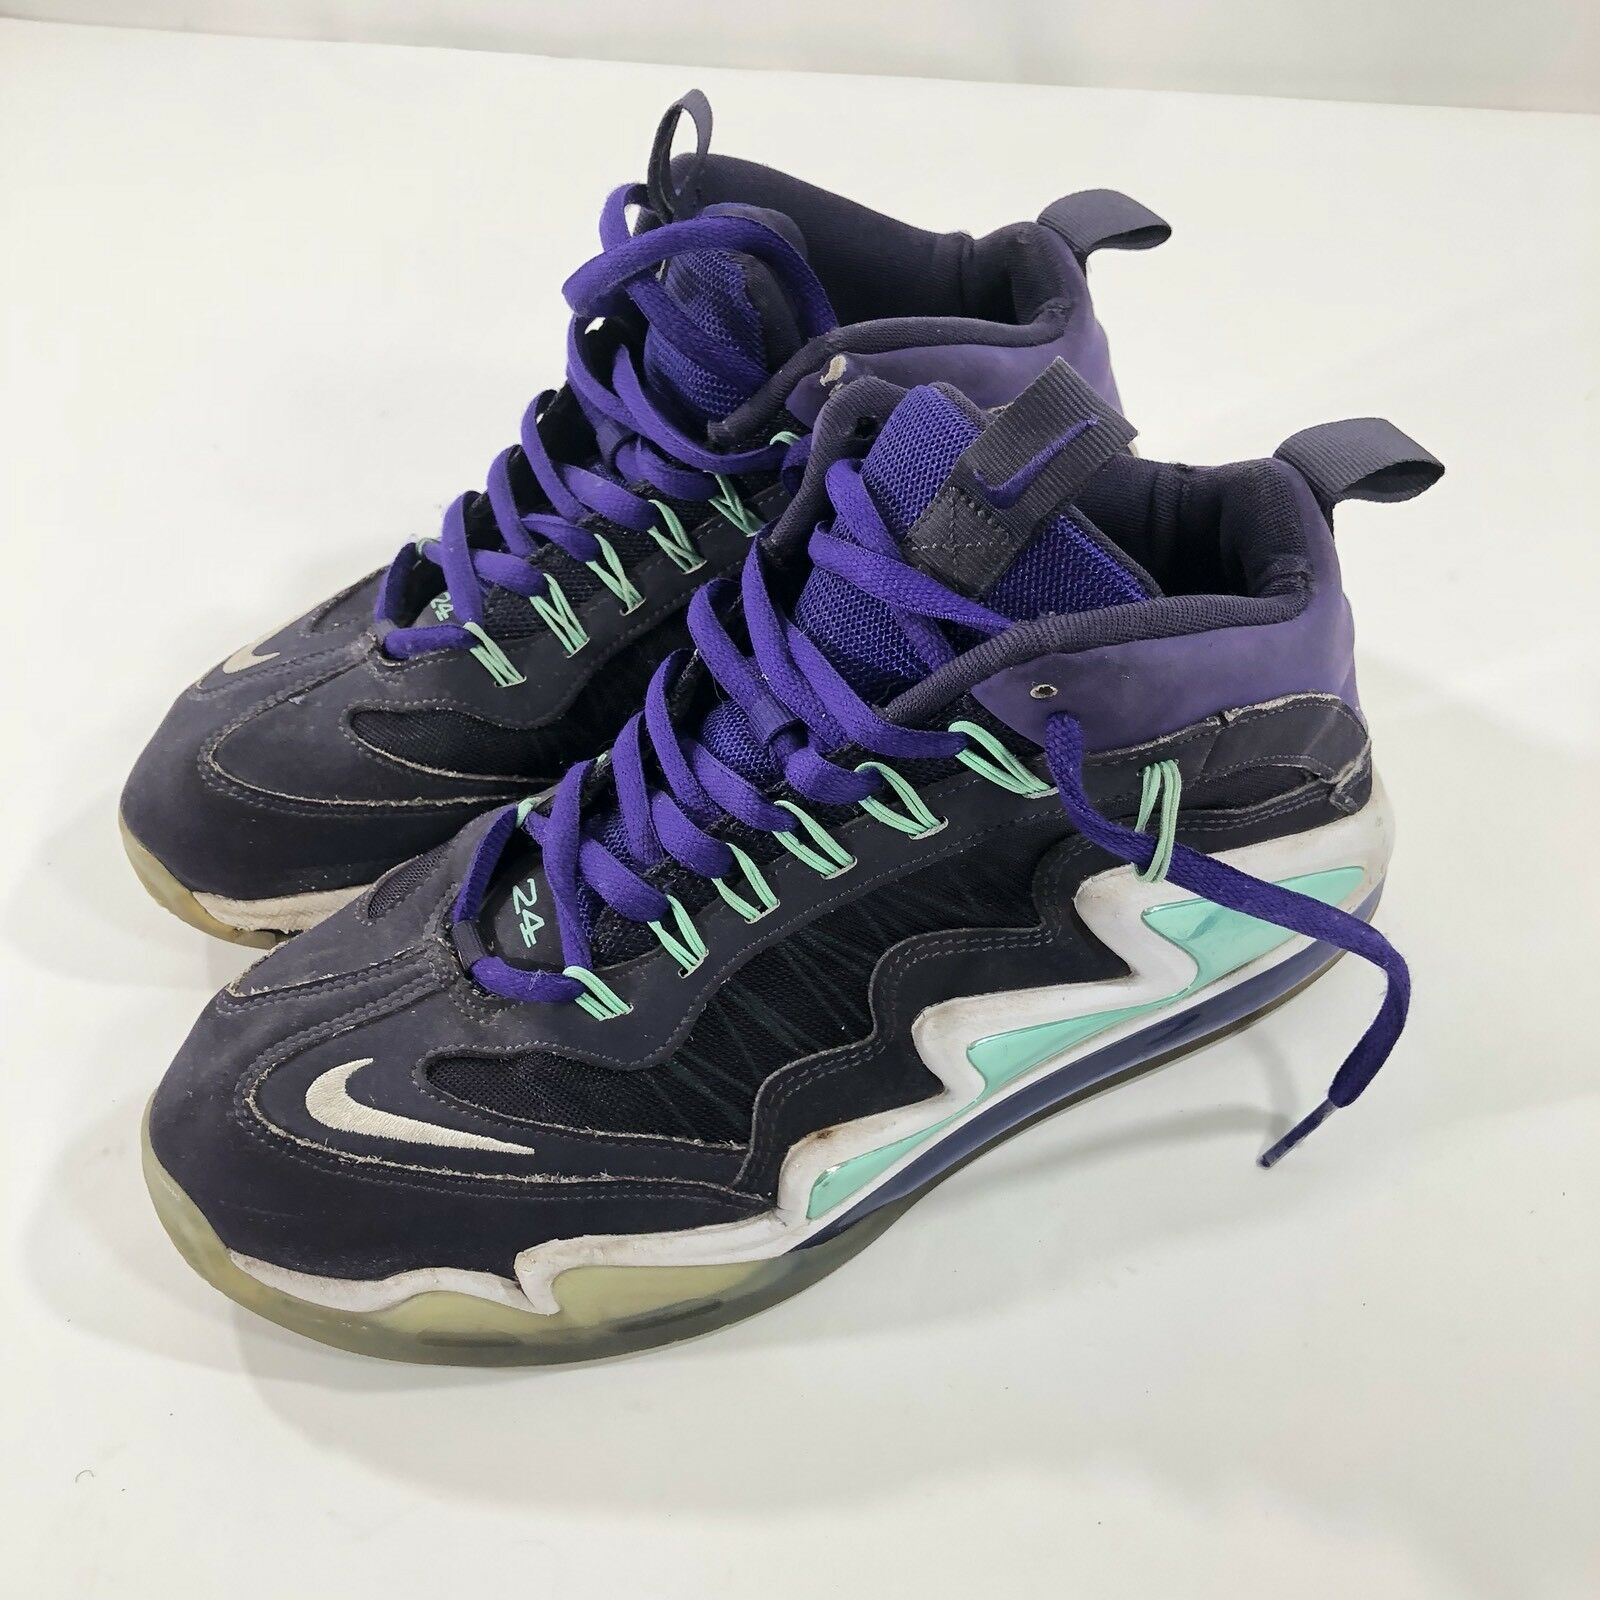 Nike Air Max 360 Diamond Griffey Athletic Shoes Purple White 580398-500 Price reduction best-selling model of the brand